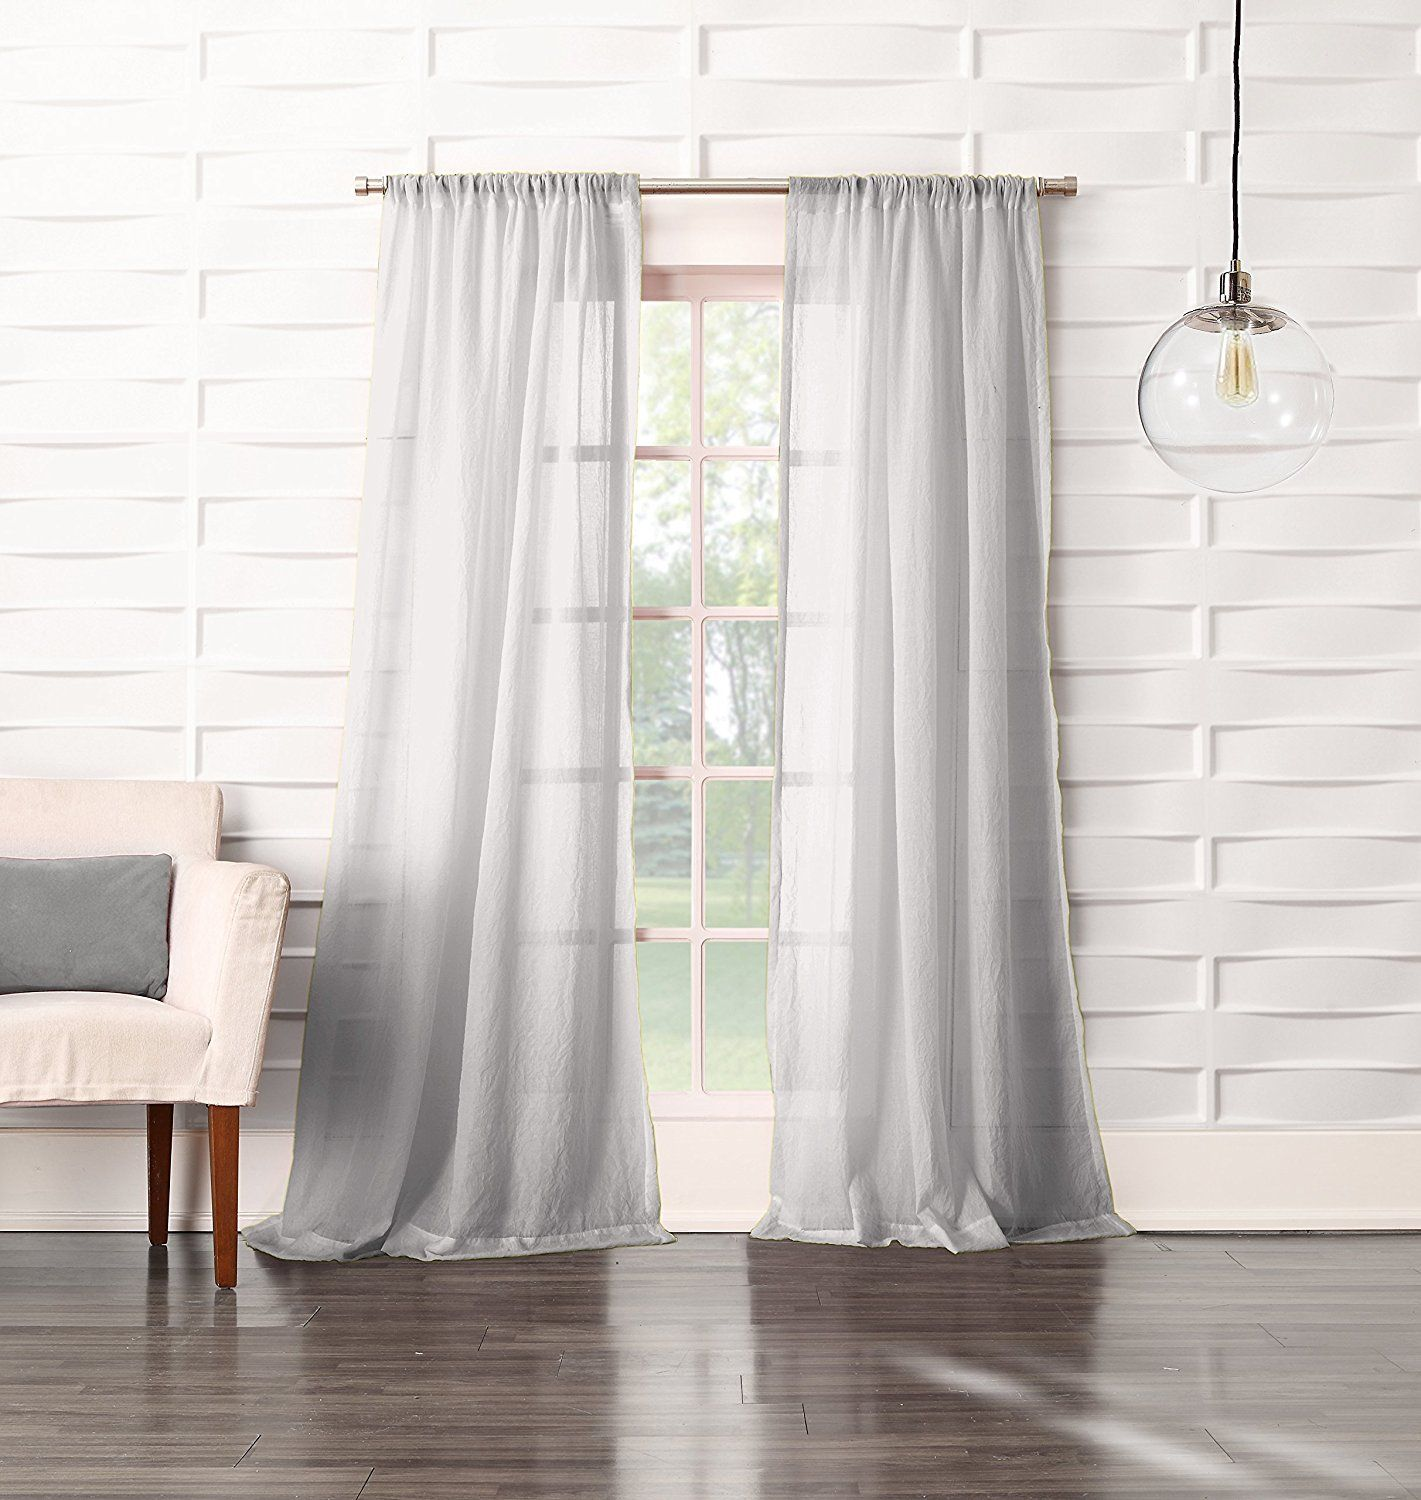 fresh curtains treatments panels on sale and living room for grey window curtain dining